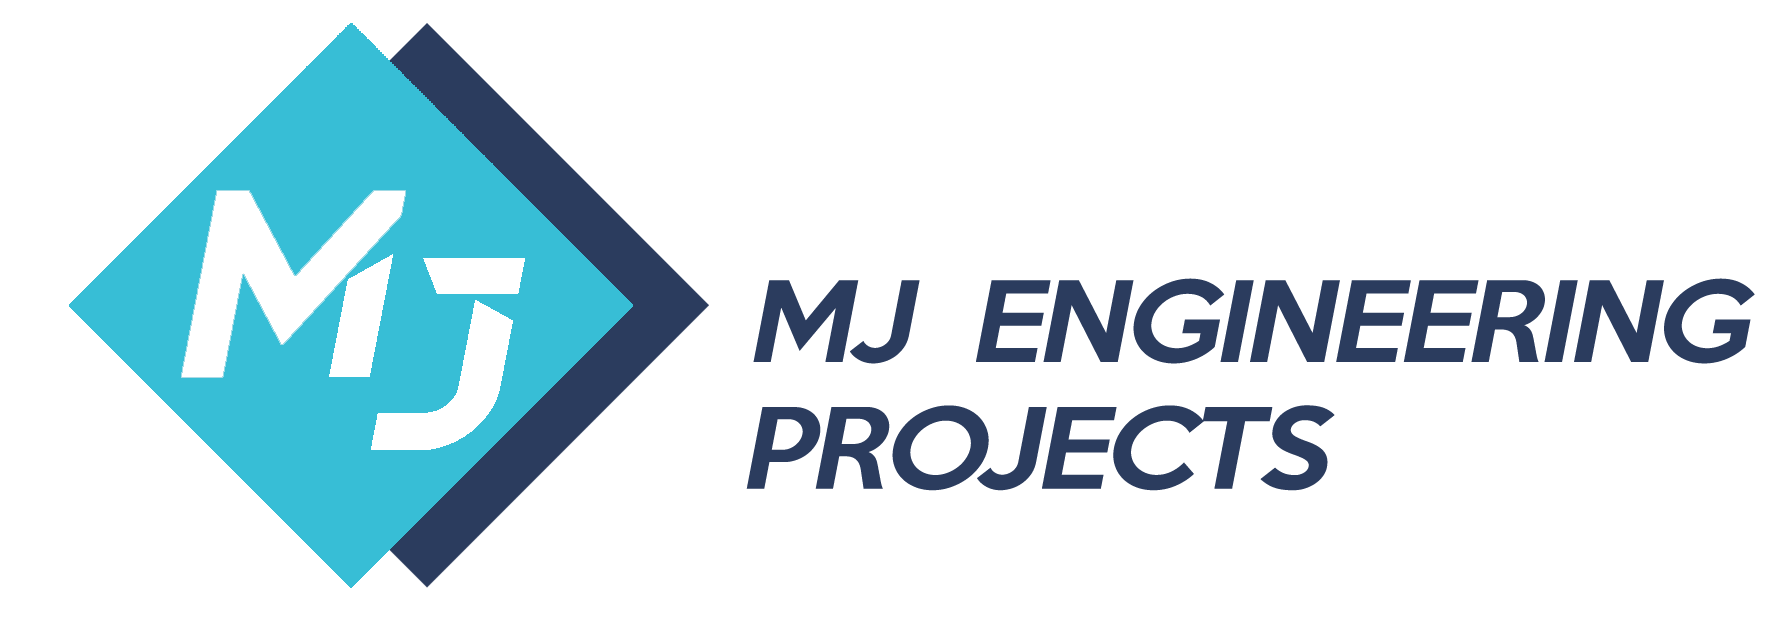 MJ Engineering Projects